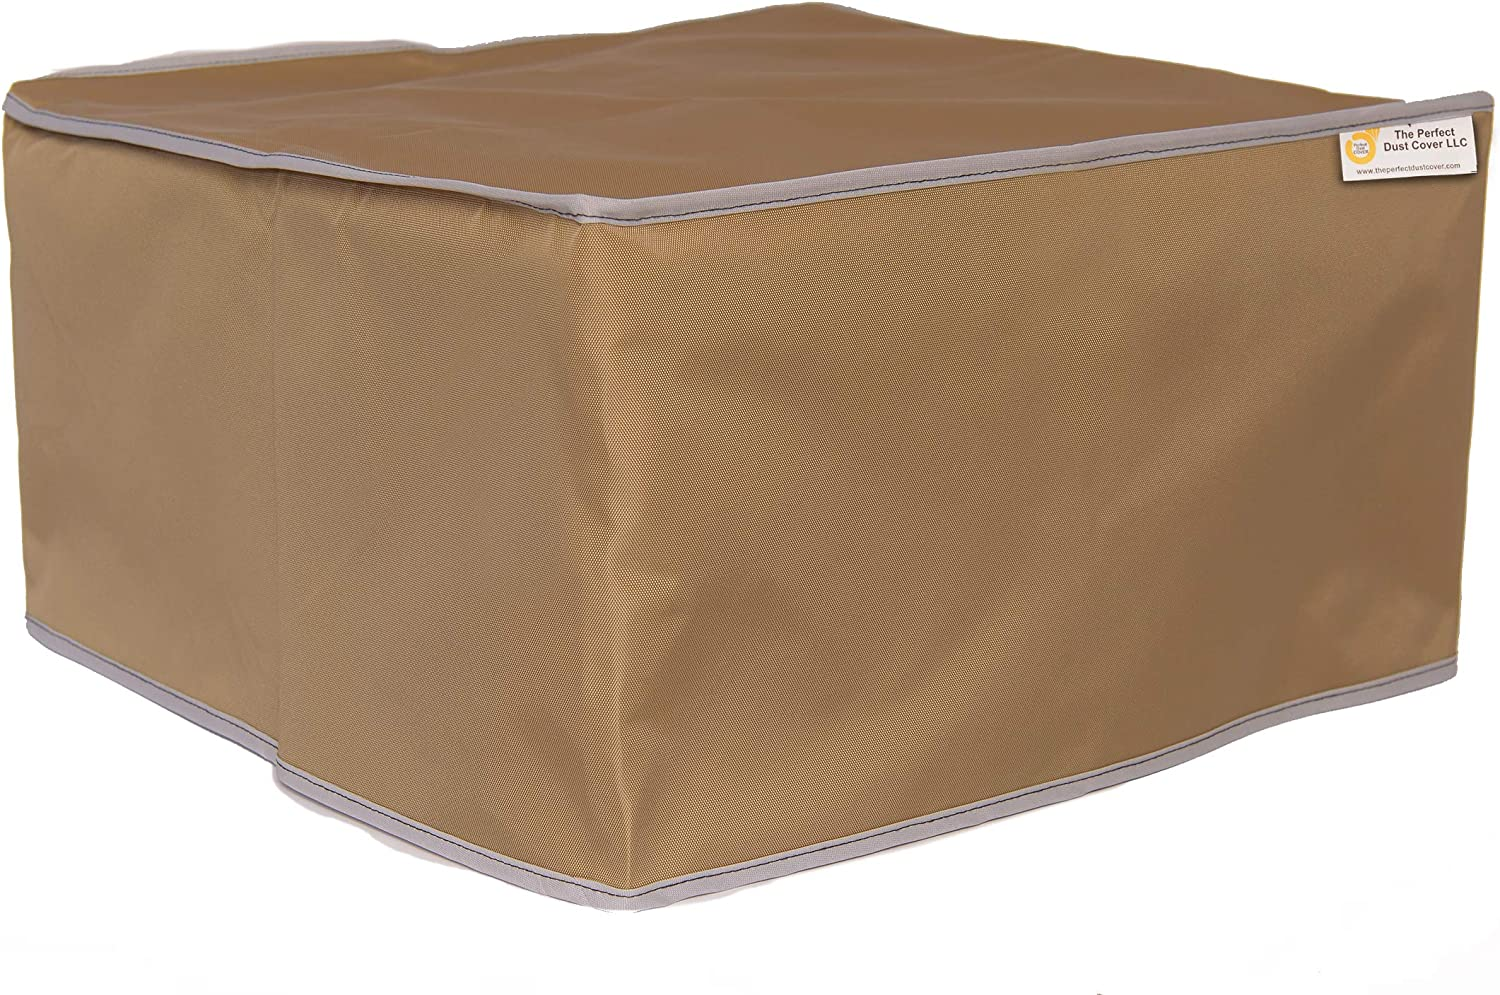 The Perfect Dust Cover, Tan Nylon Cover for HP OfficeJet Pro 8702 All-in-One Wireless Printer, Anti Static and Waterproof Cover Dimensions 19.7''W x 15.9''D x 12.5''H by The Perfect Dust Cover LLC